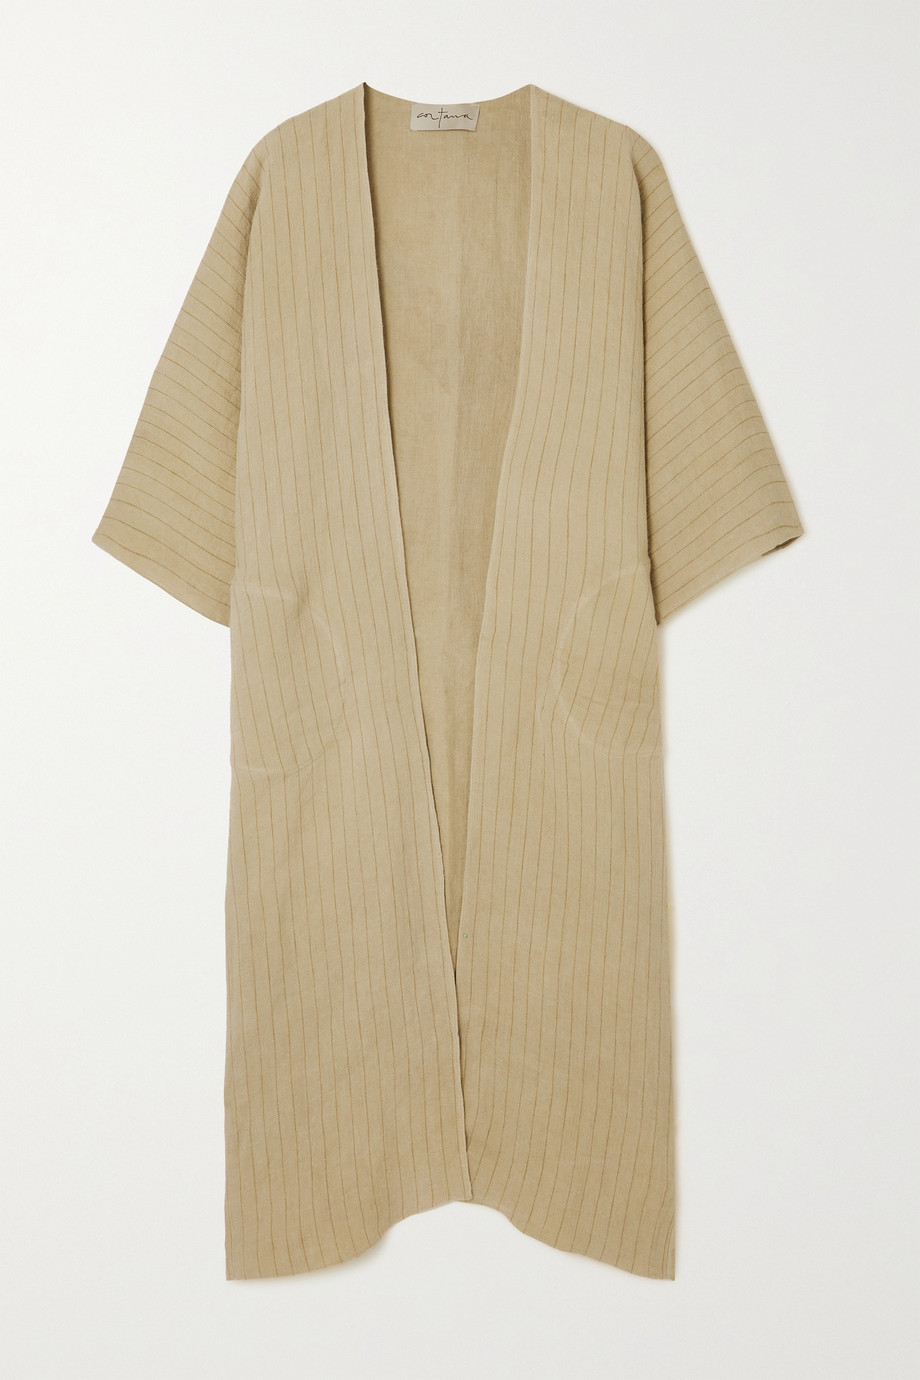 Cortana + NET SUSTAIN Paja striped linen jacket